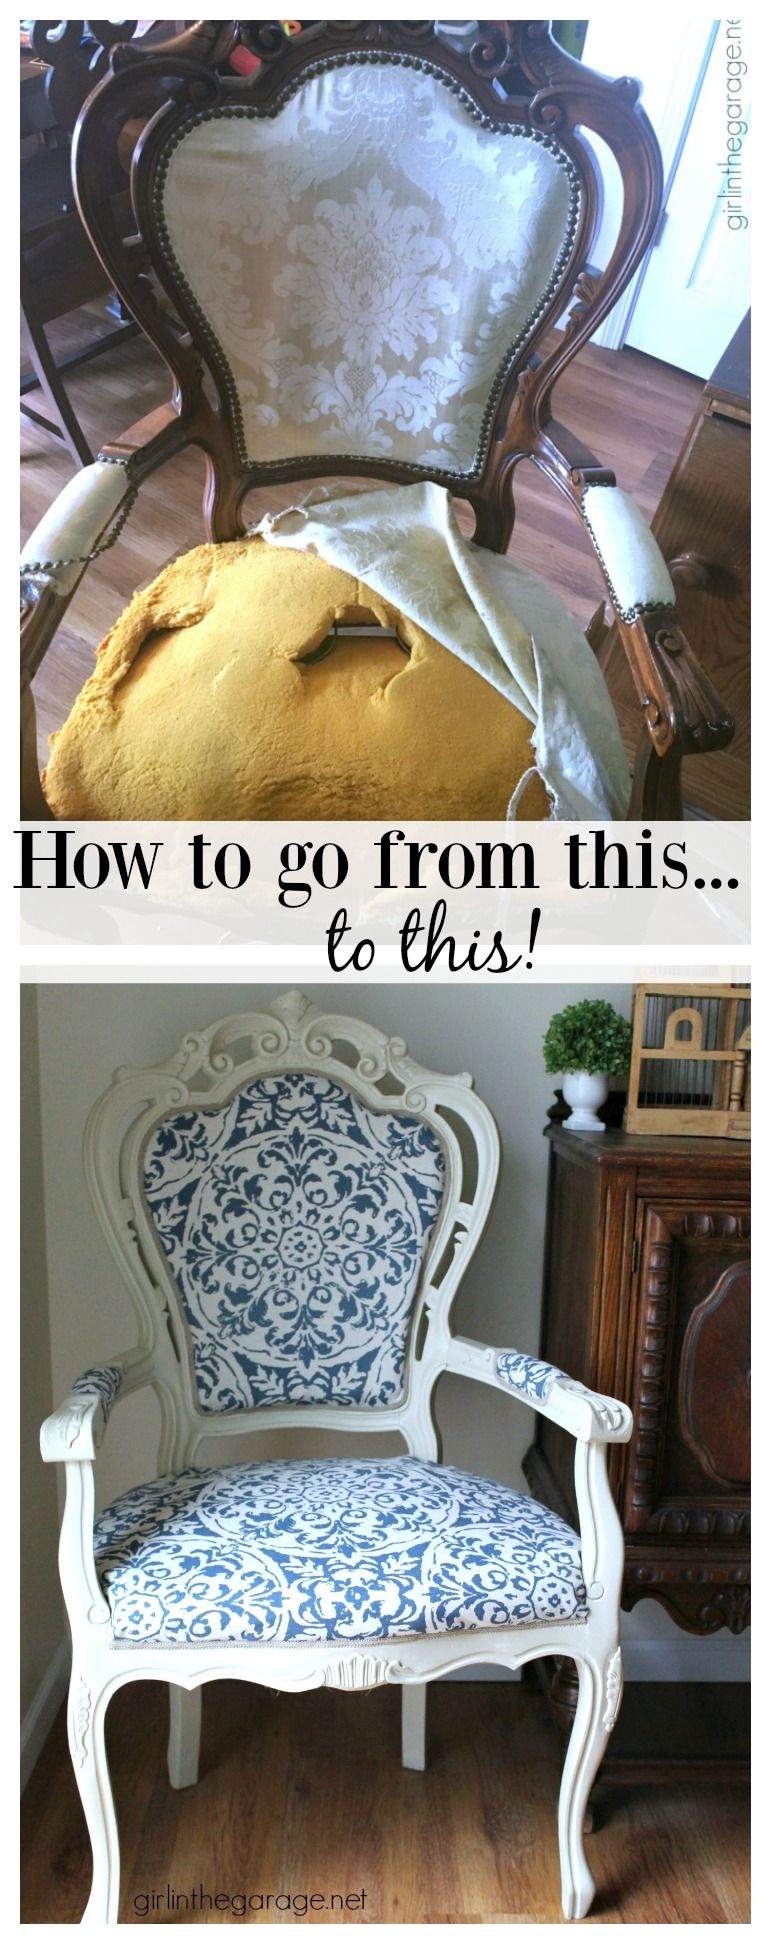 Bentwood rocking chair makeover - Diy Reupholstered Chair Makeover With Chalk Paint And Clearance Curtain As Fabric Girl In The